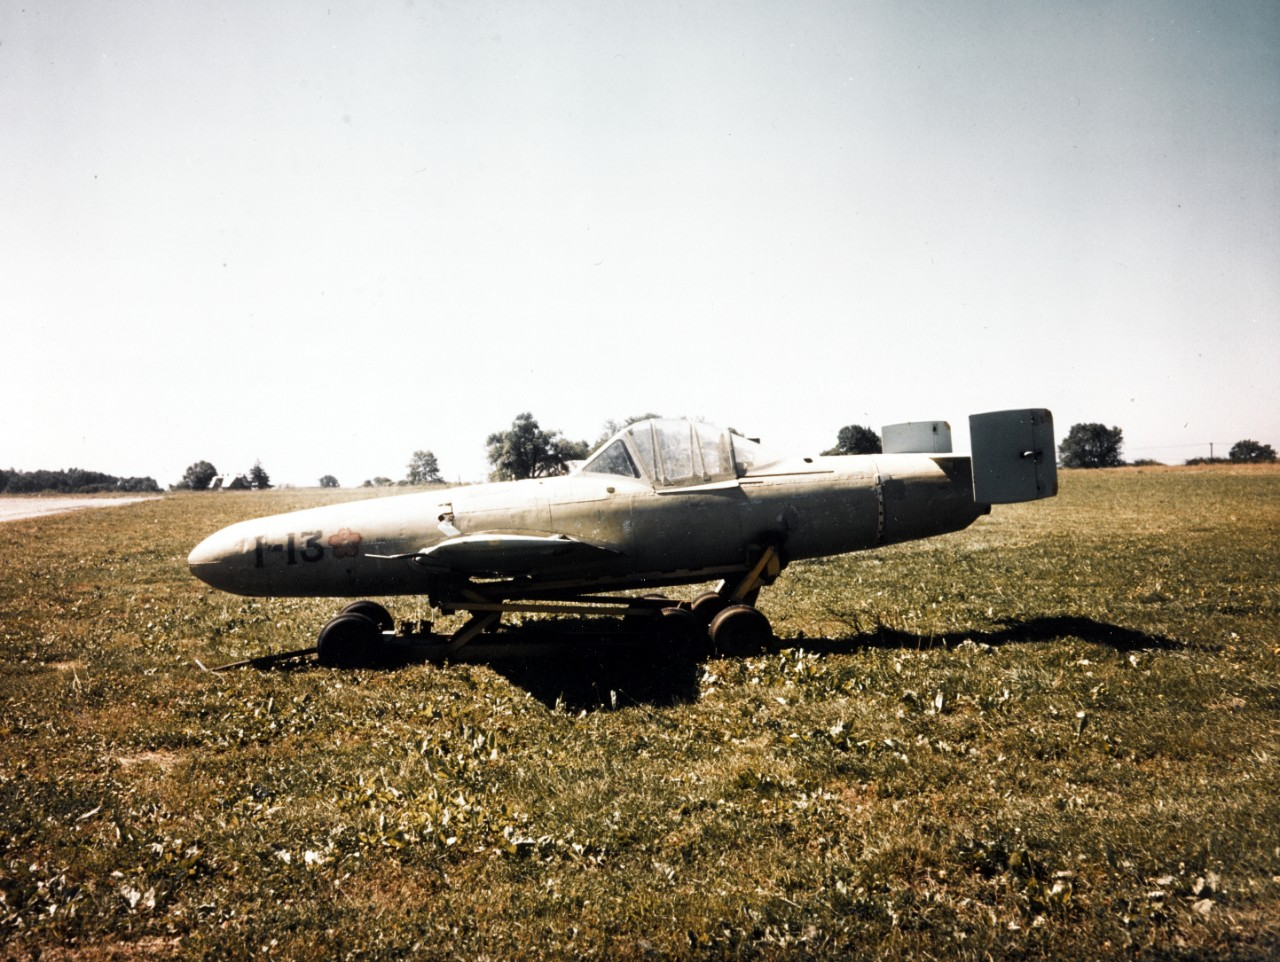 <p>80-G-K-5885 Japanese YOKOSUKA MXY7 OHKA (&quot;BAKA&quot;) captured intact by Marines on Okinawa, 26 June 1945</p>